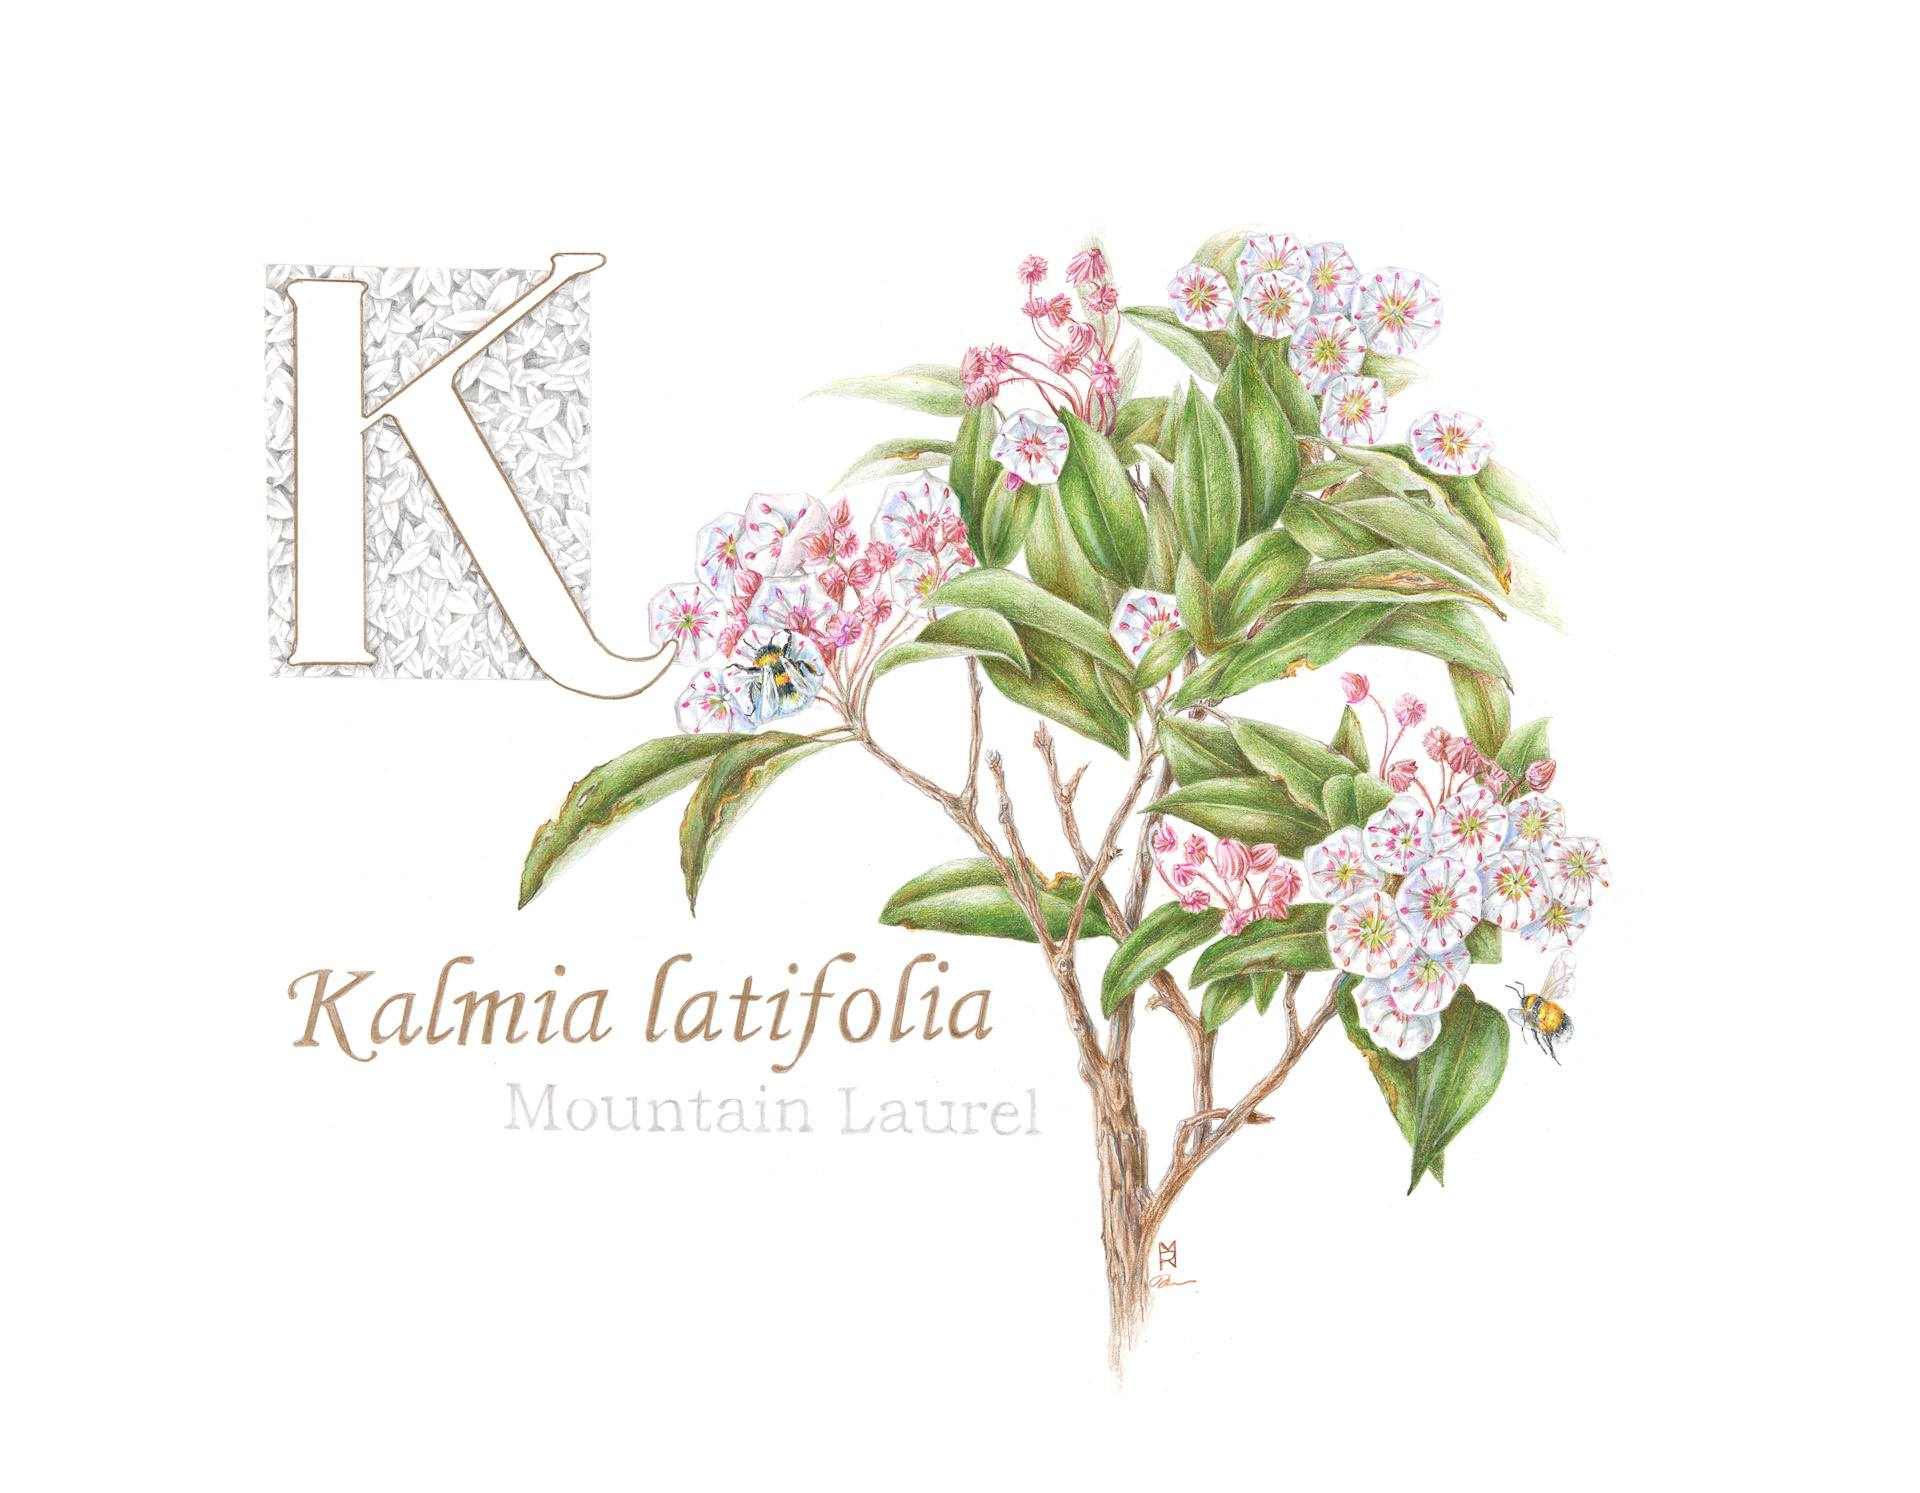 Kalmia latifolia, mountain laurel, Colored pencil and graphite by Robin Menard